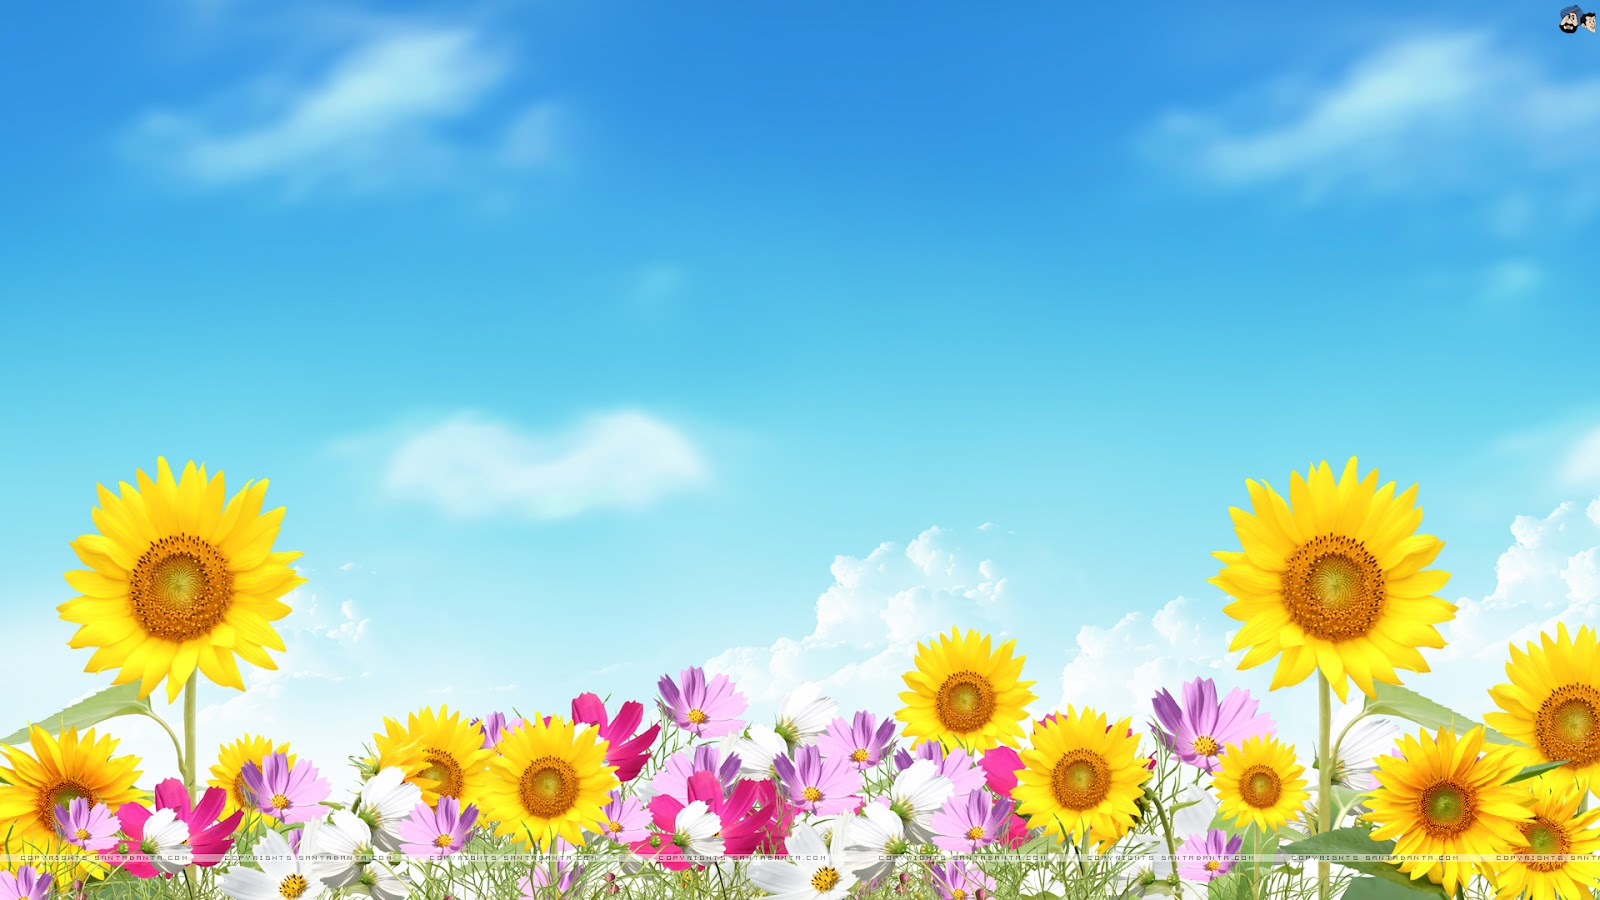 Summer Wallpapers For Desktop